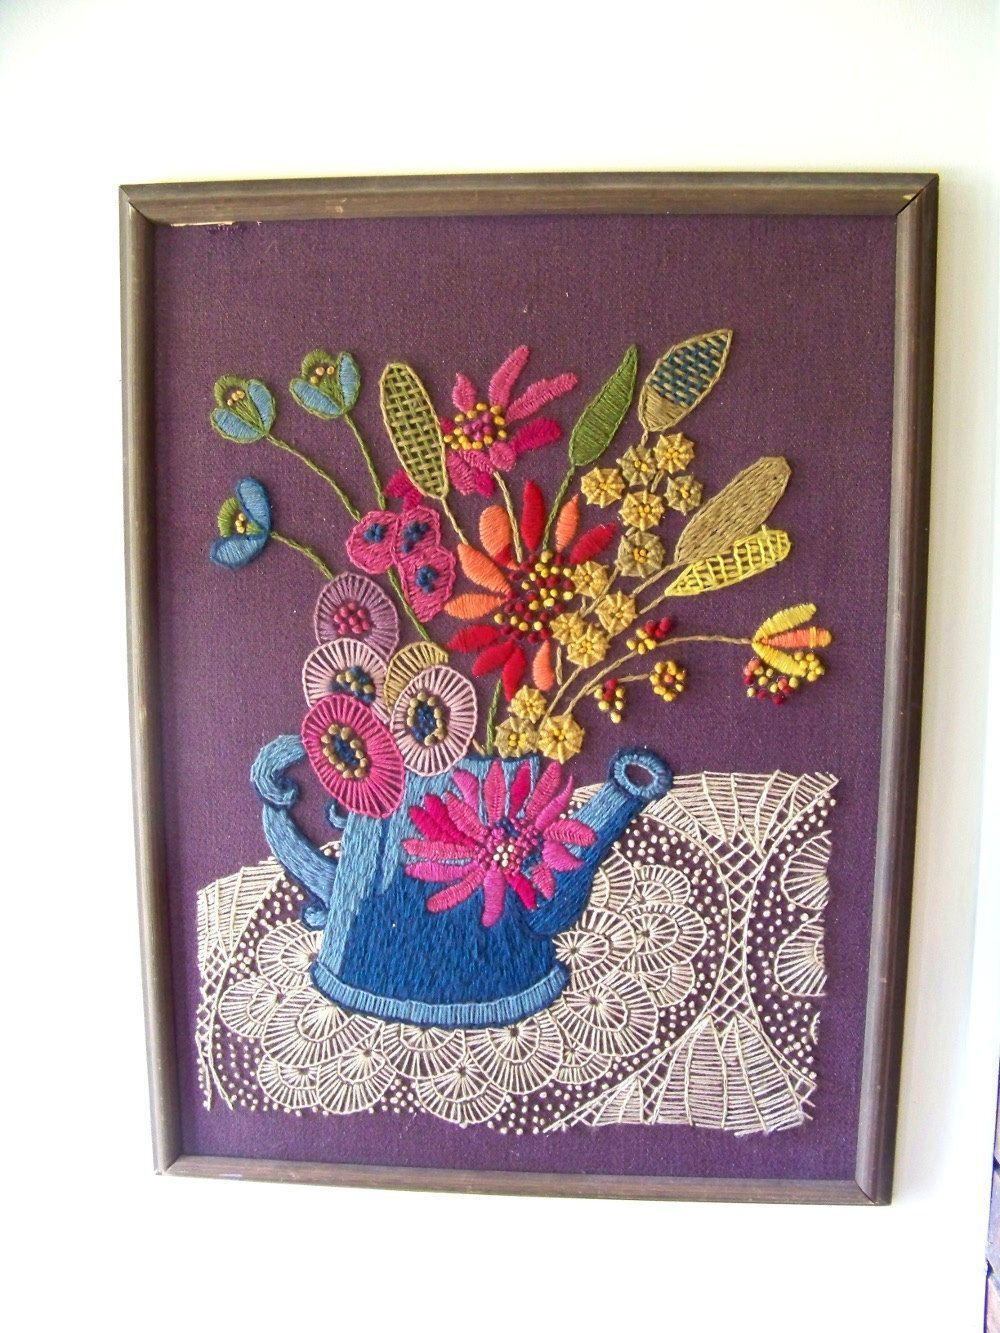 Large vintage crewel embroidery watering can with flowers on